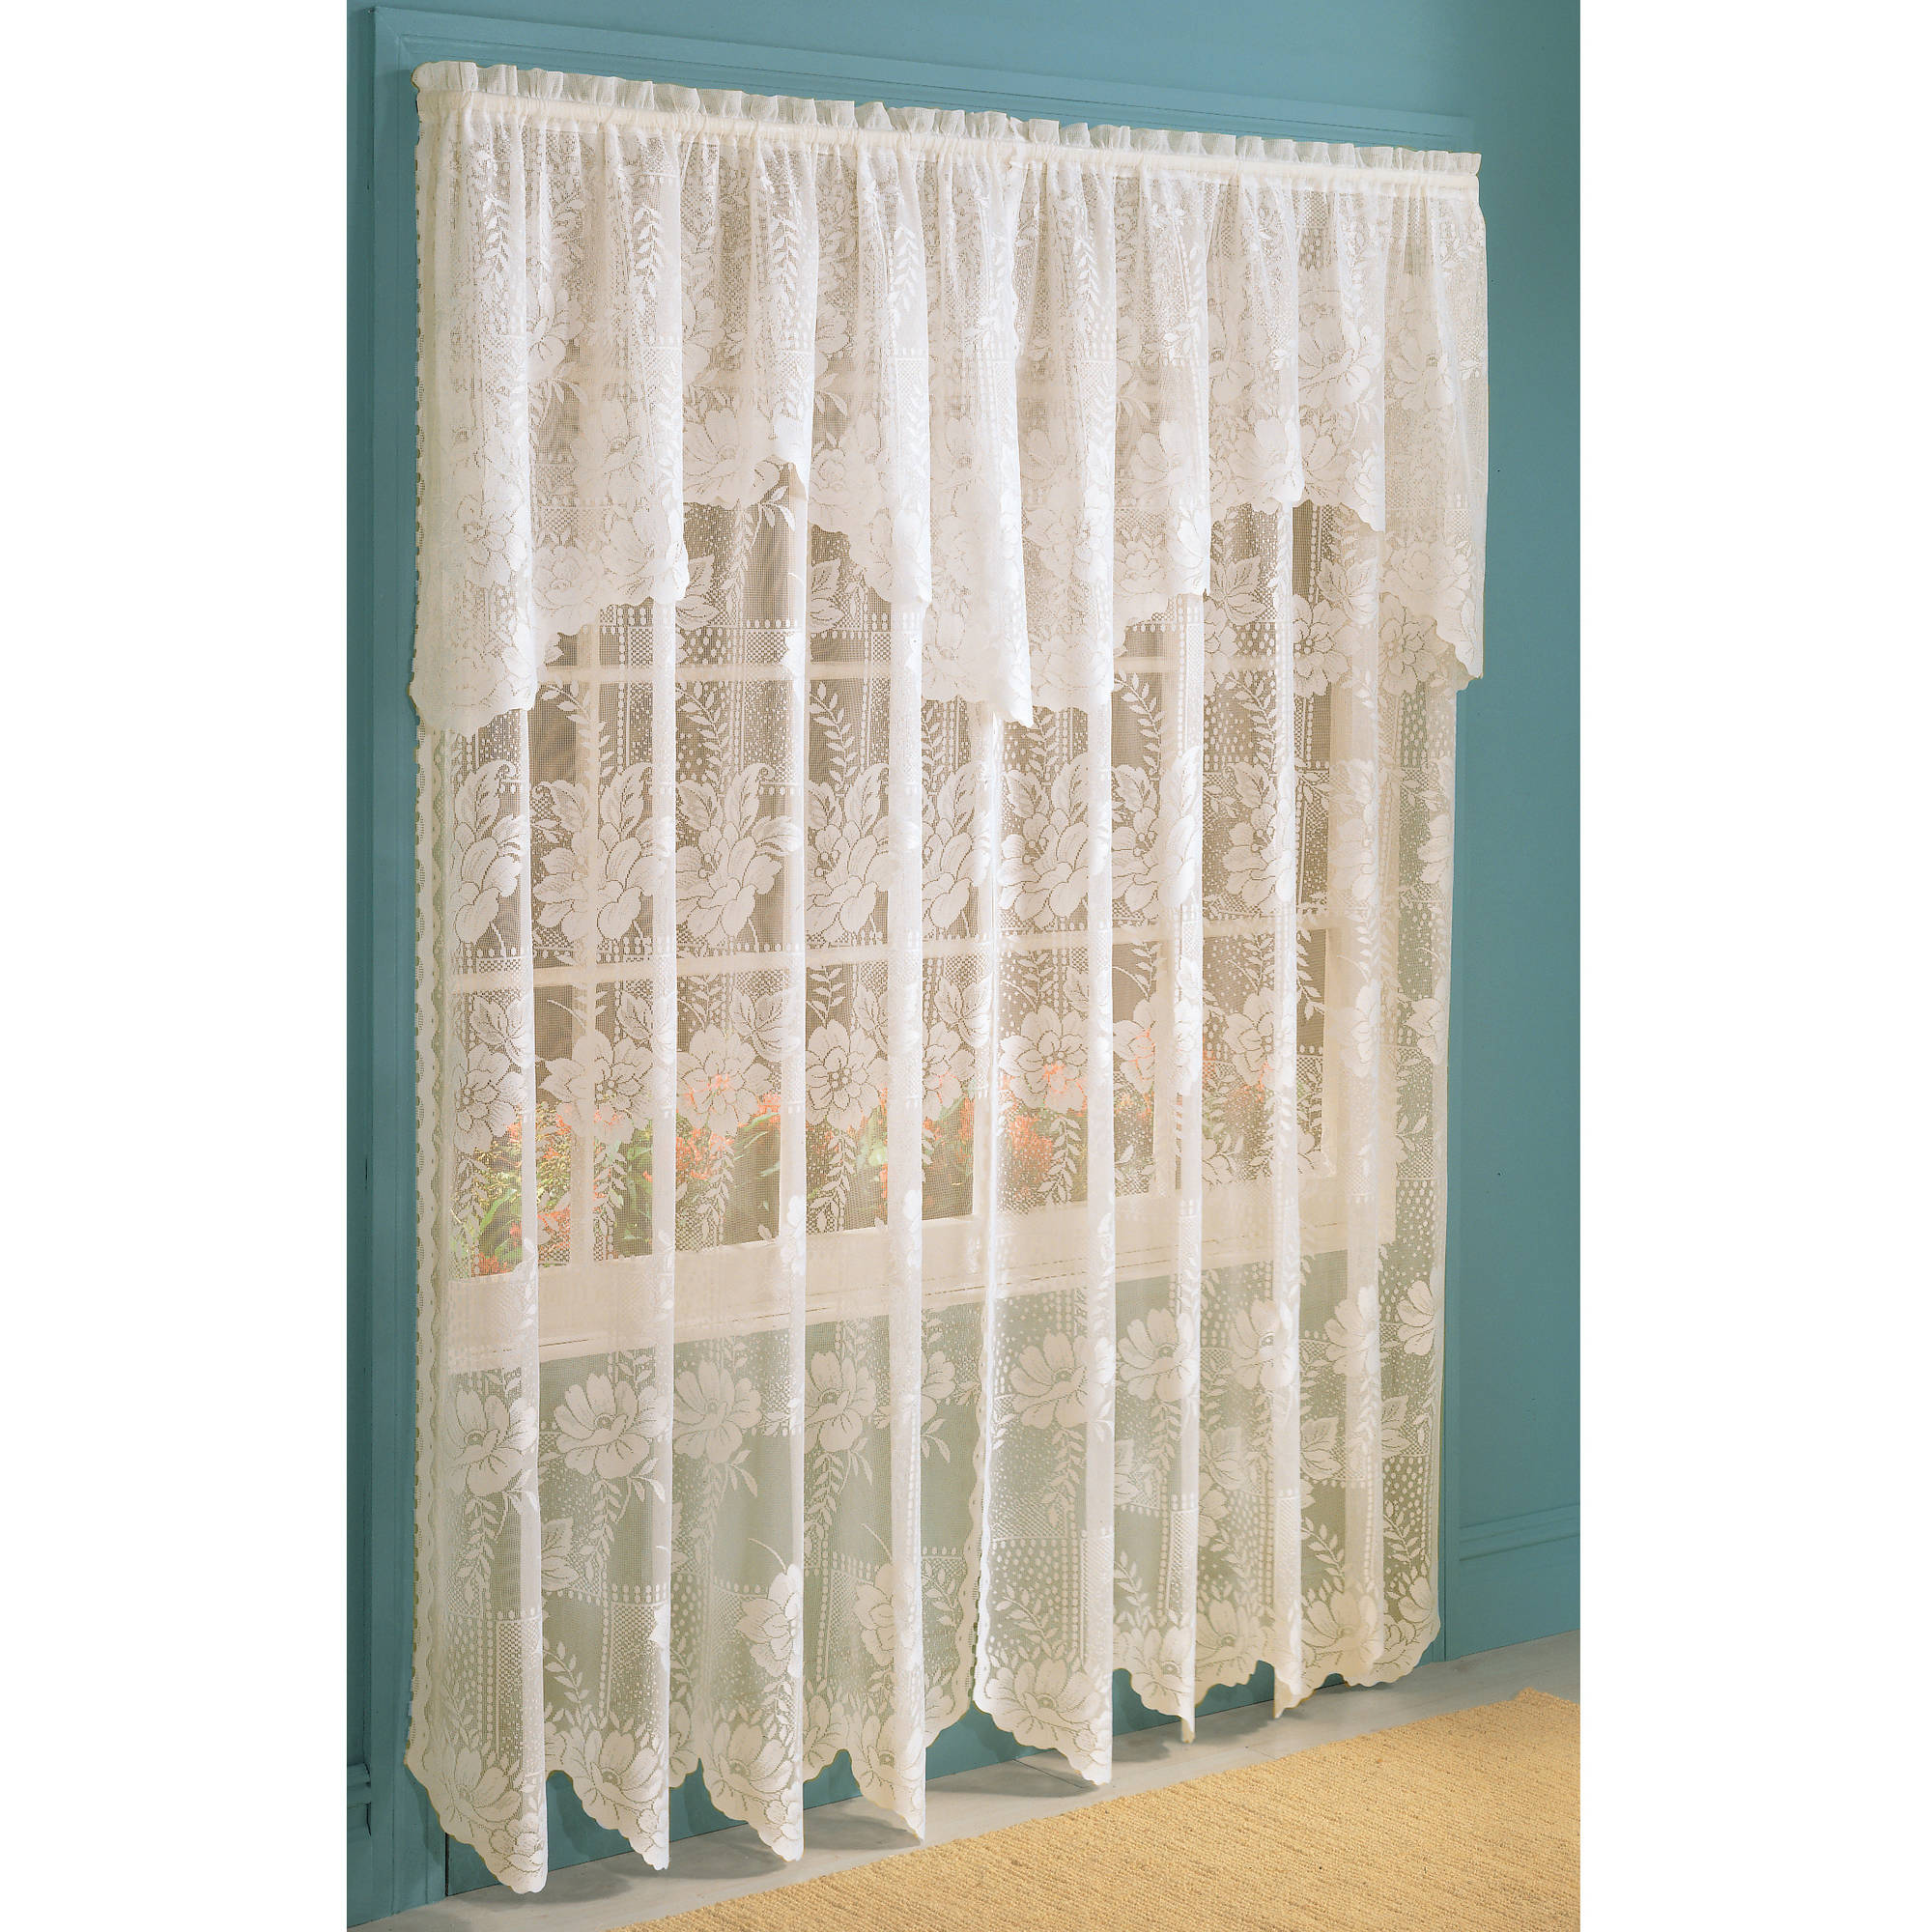 Walmart curtains valances - Anna Lace Curtain Panel With Attached Valance Walmart Com